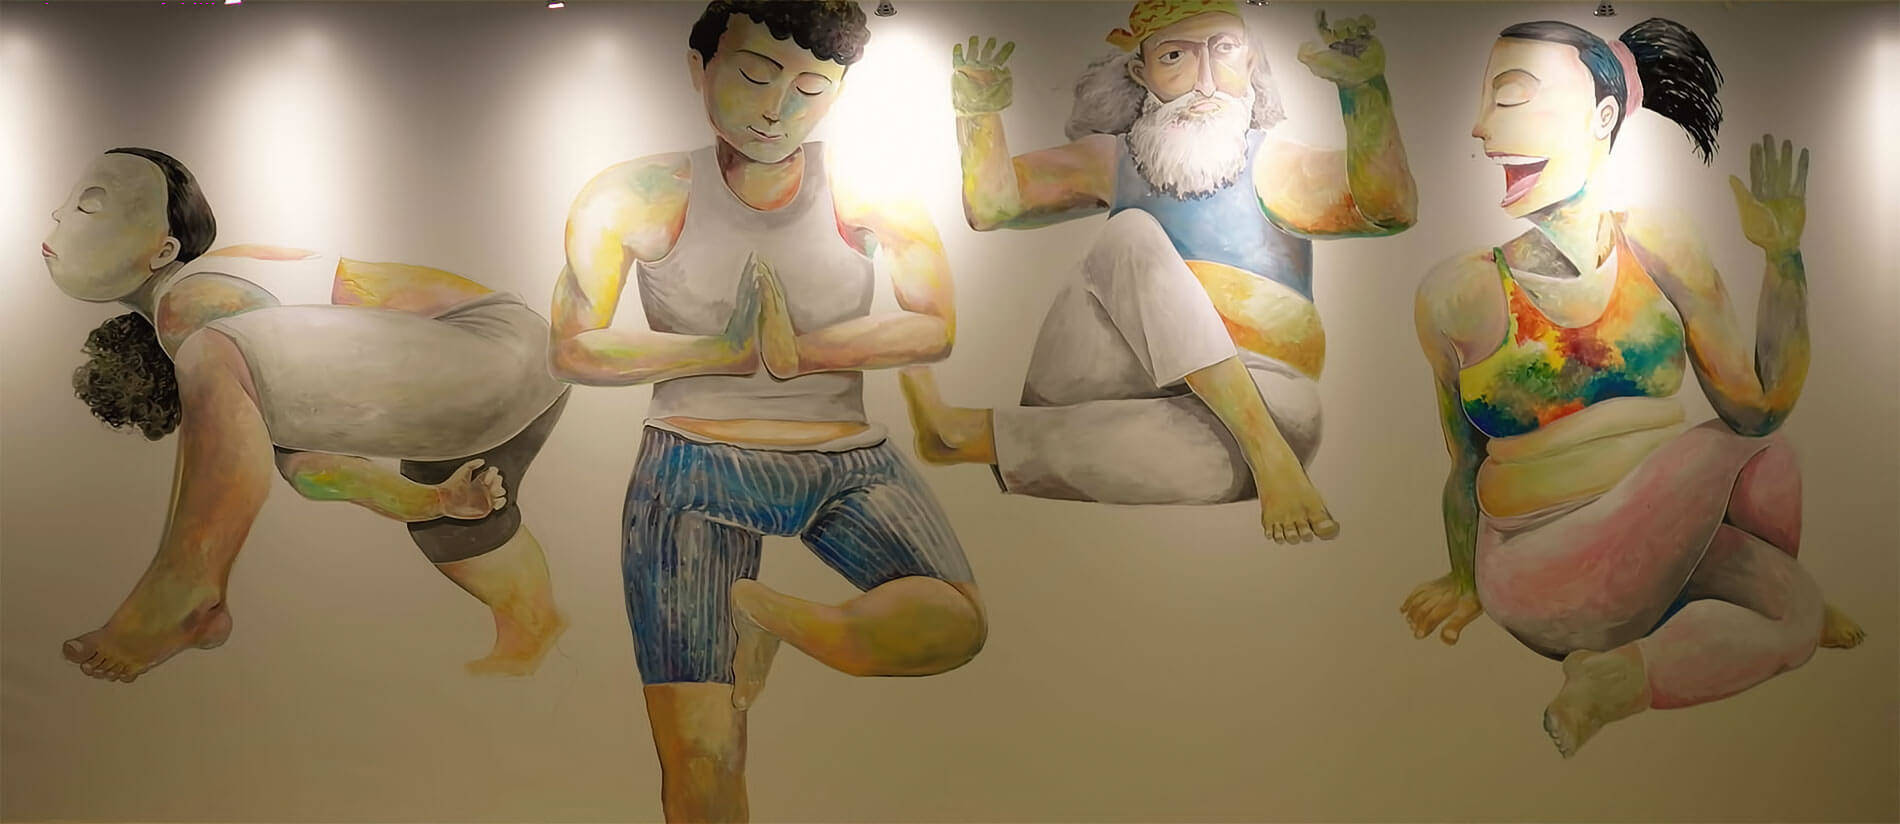 Ying-fat's Mural x Pure Yoga Live Wall Art Painting For Pure Yoga x Pacific Place